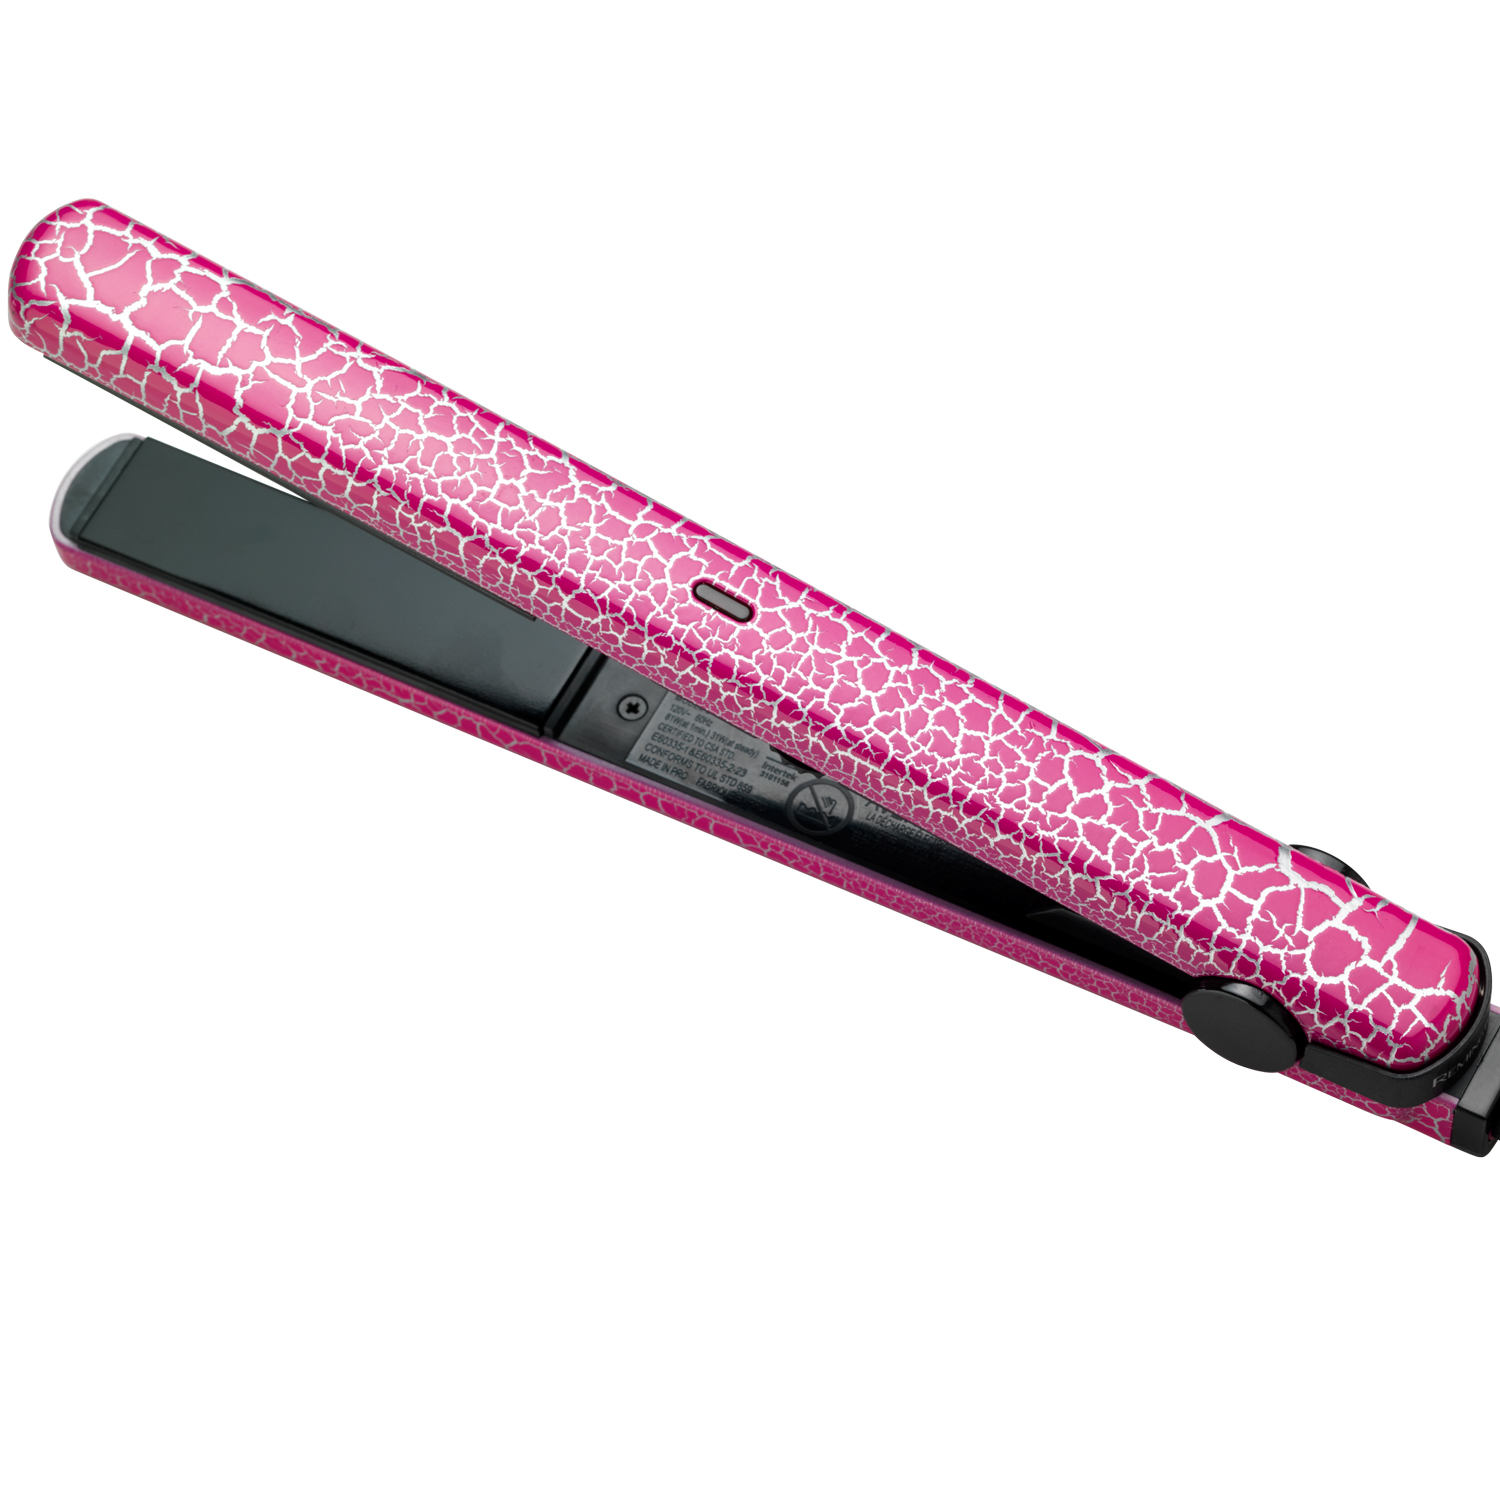 Remington straightener printable coupons